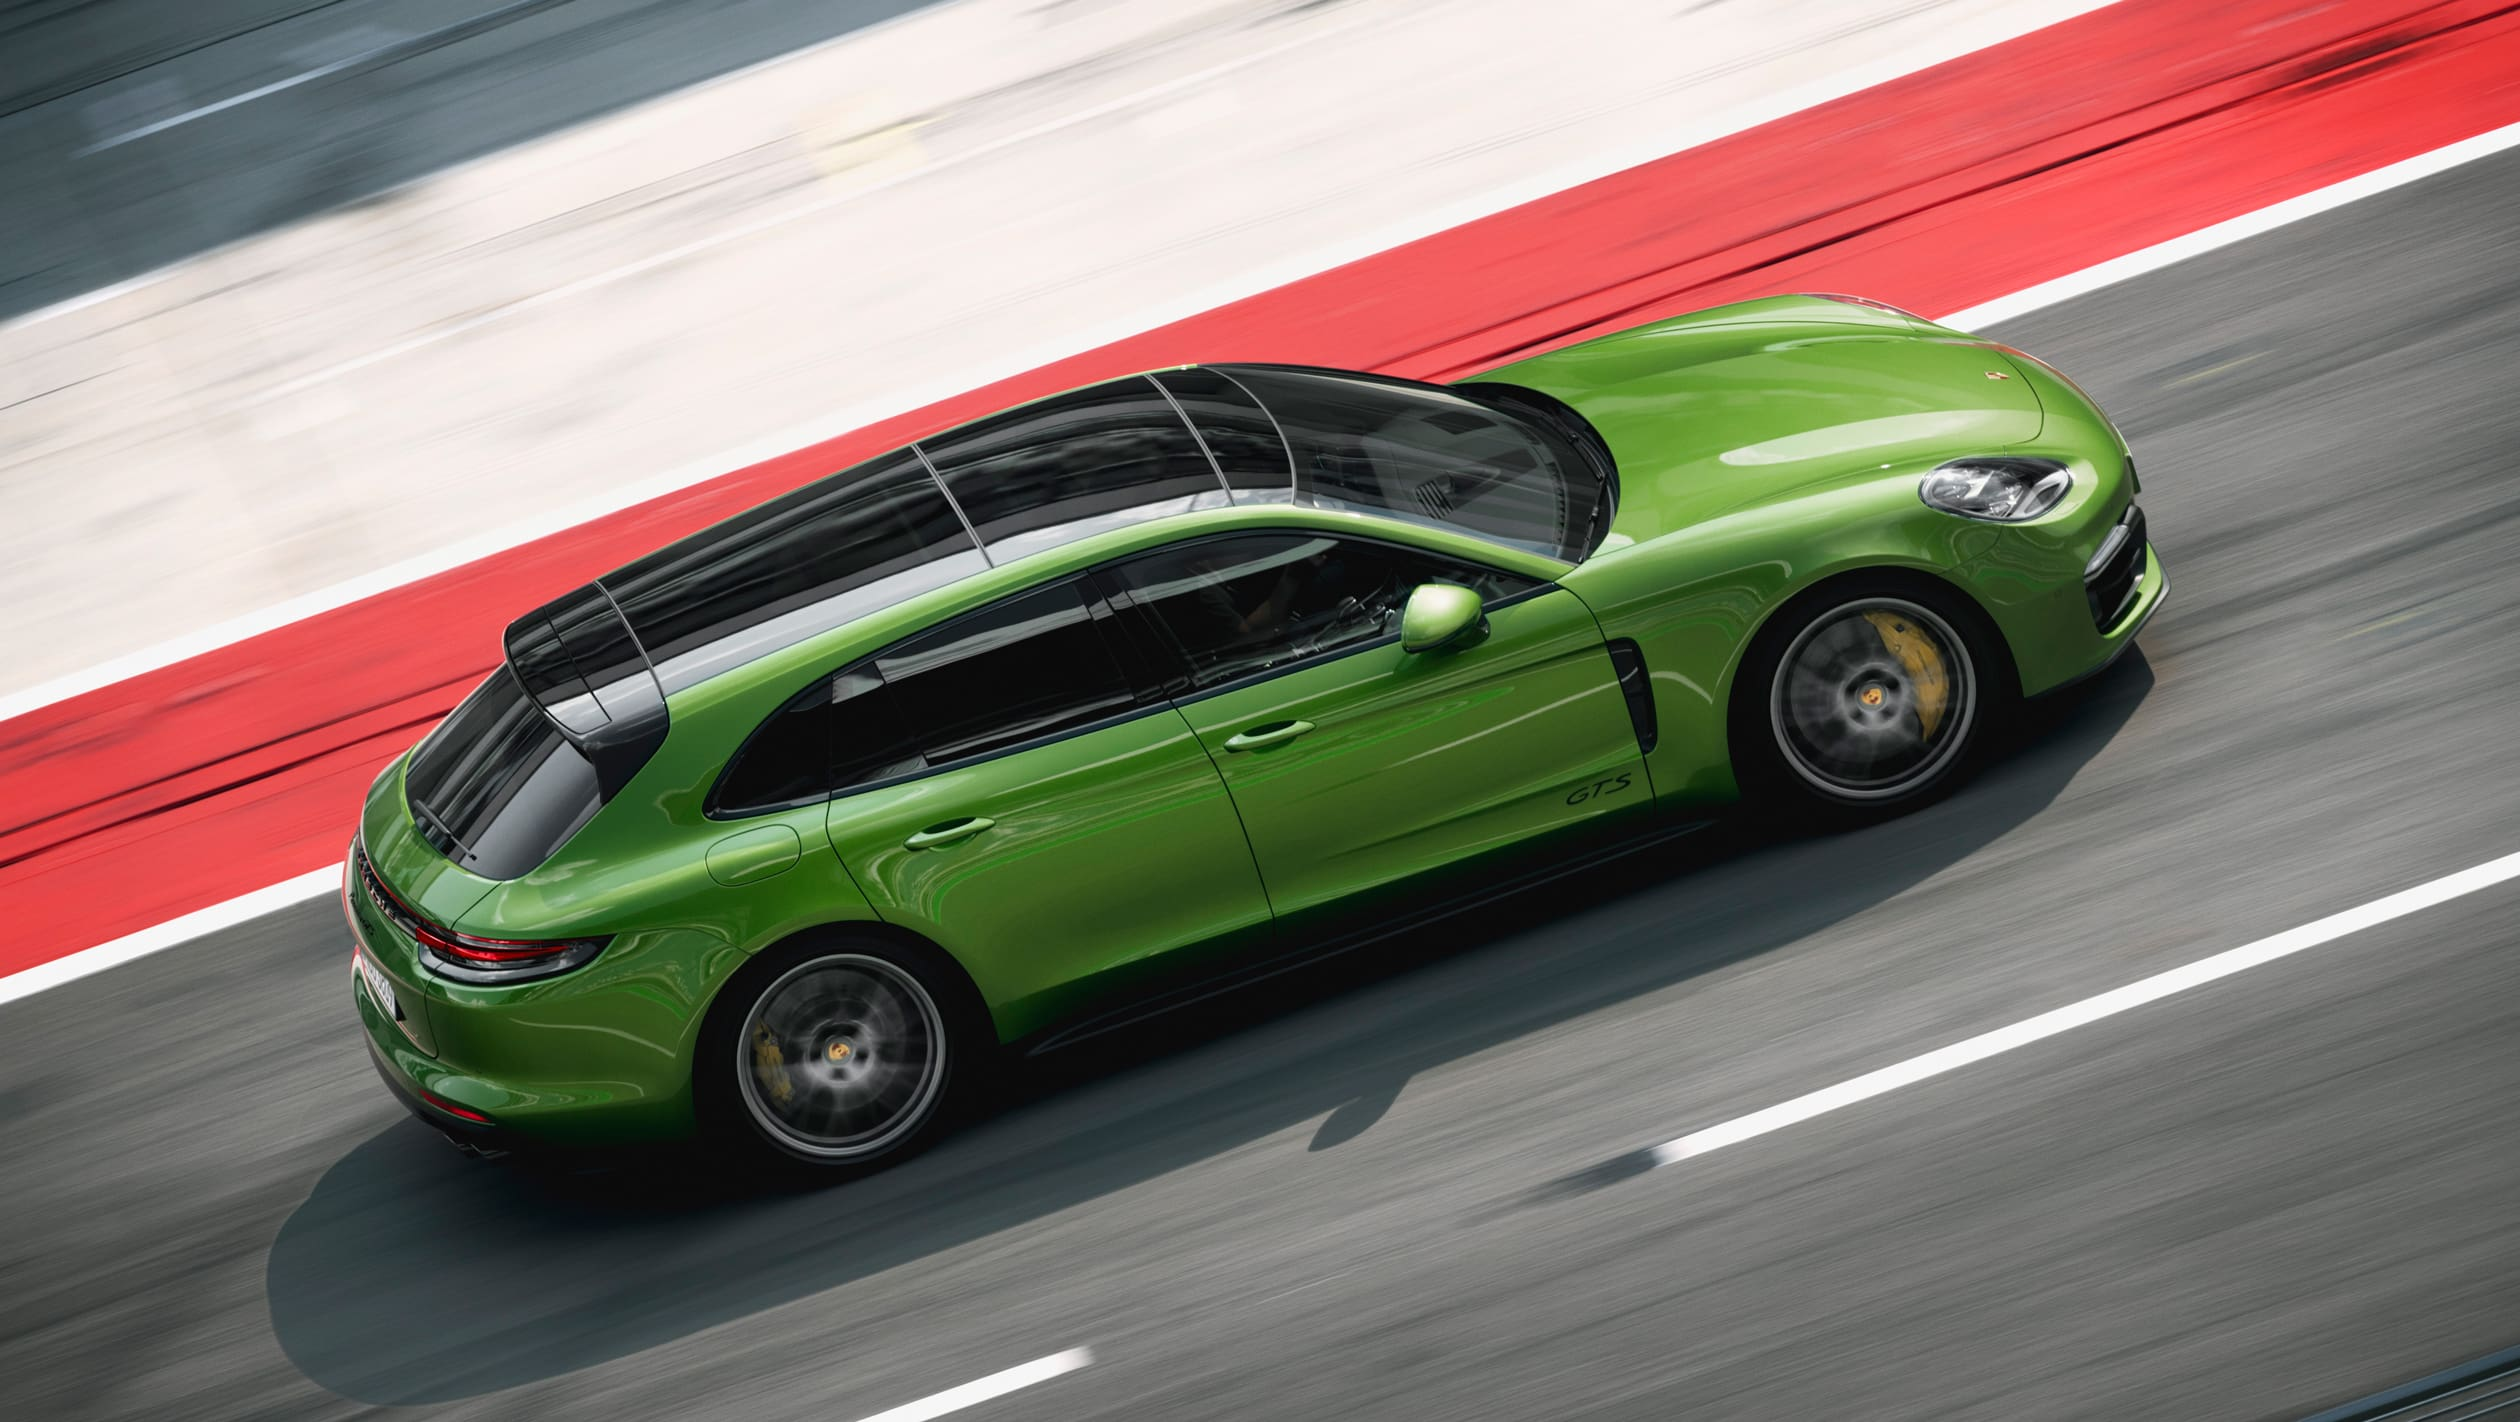 Prices And Specifications Of Porsche Panamera Gts 2019 Confirmed